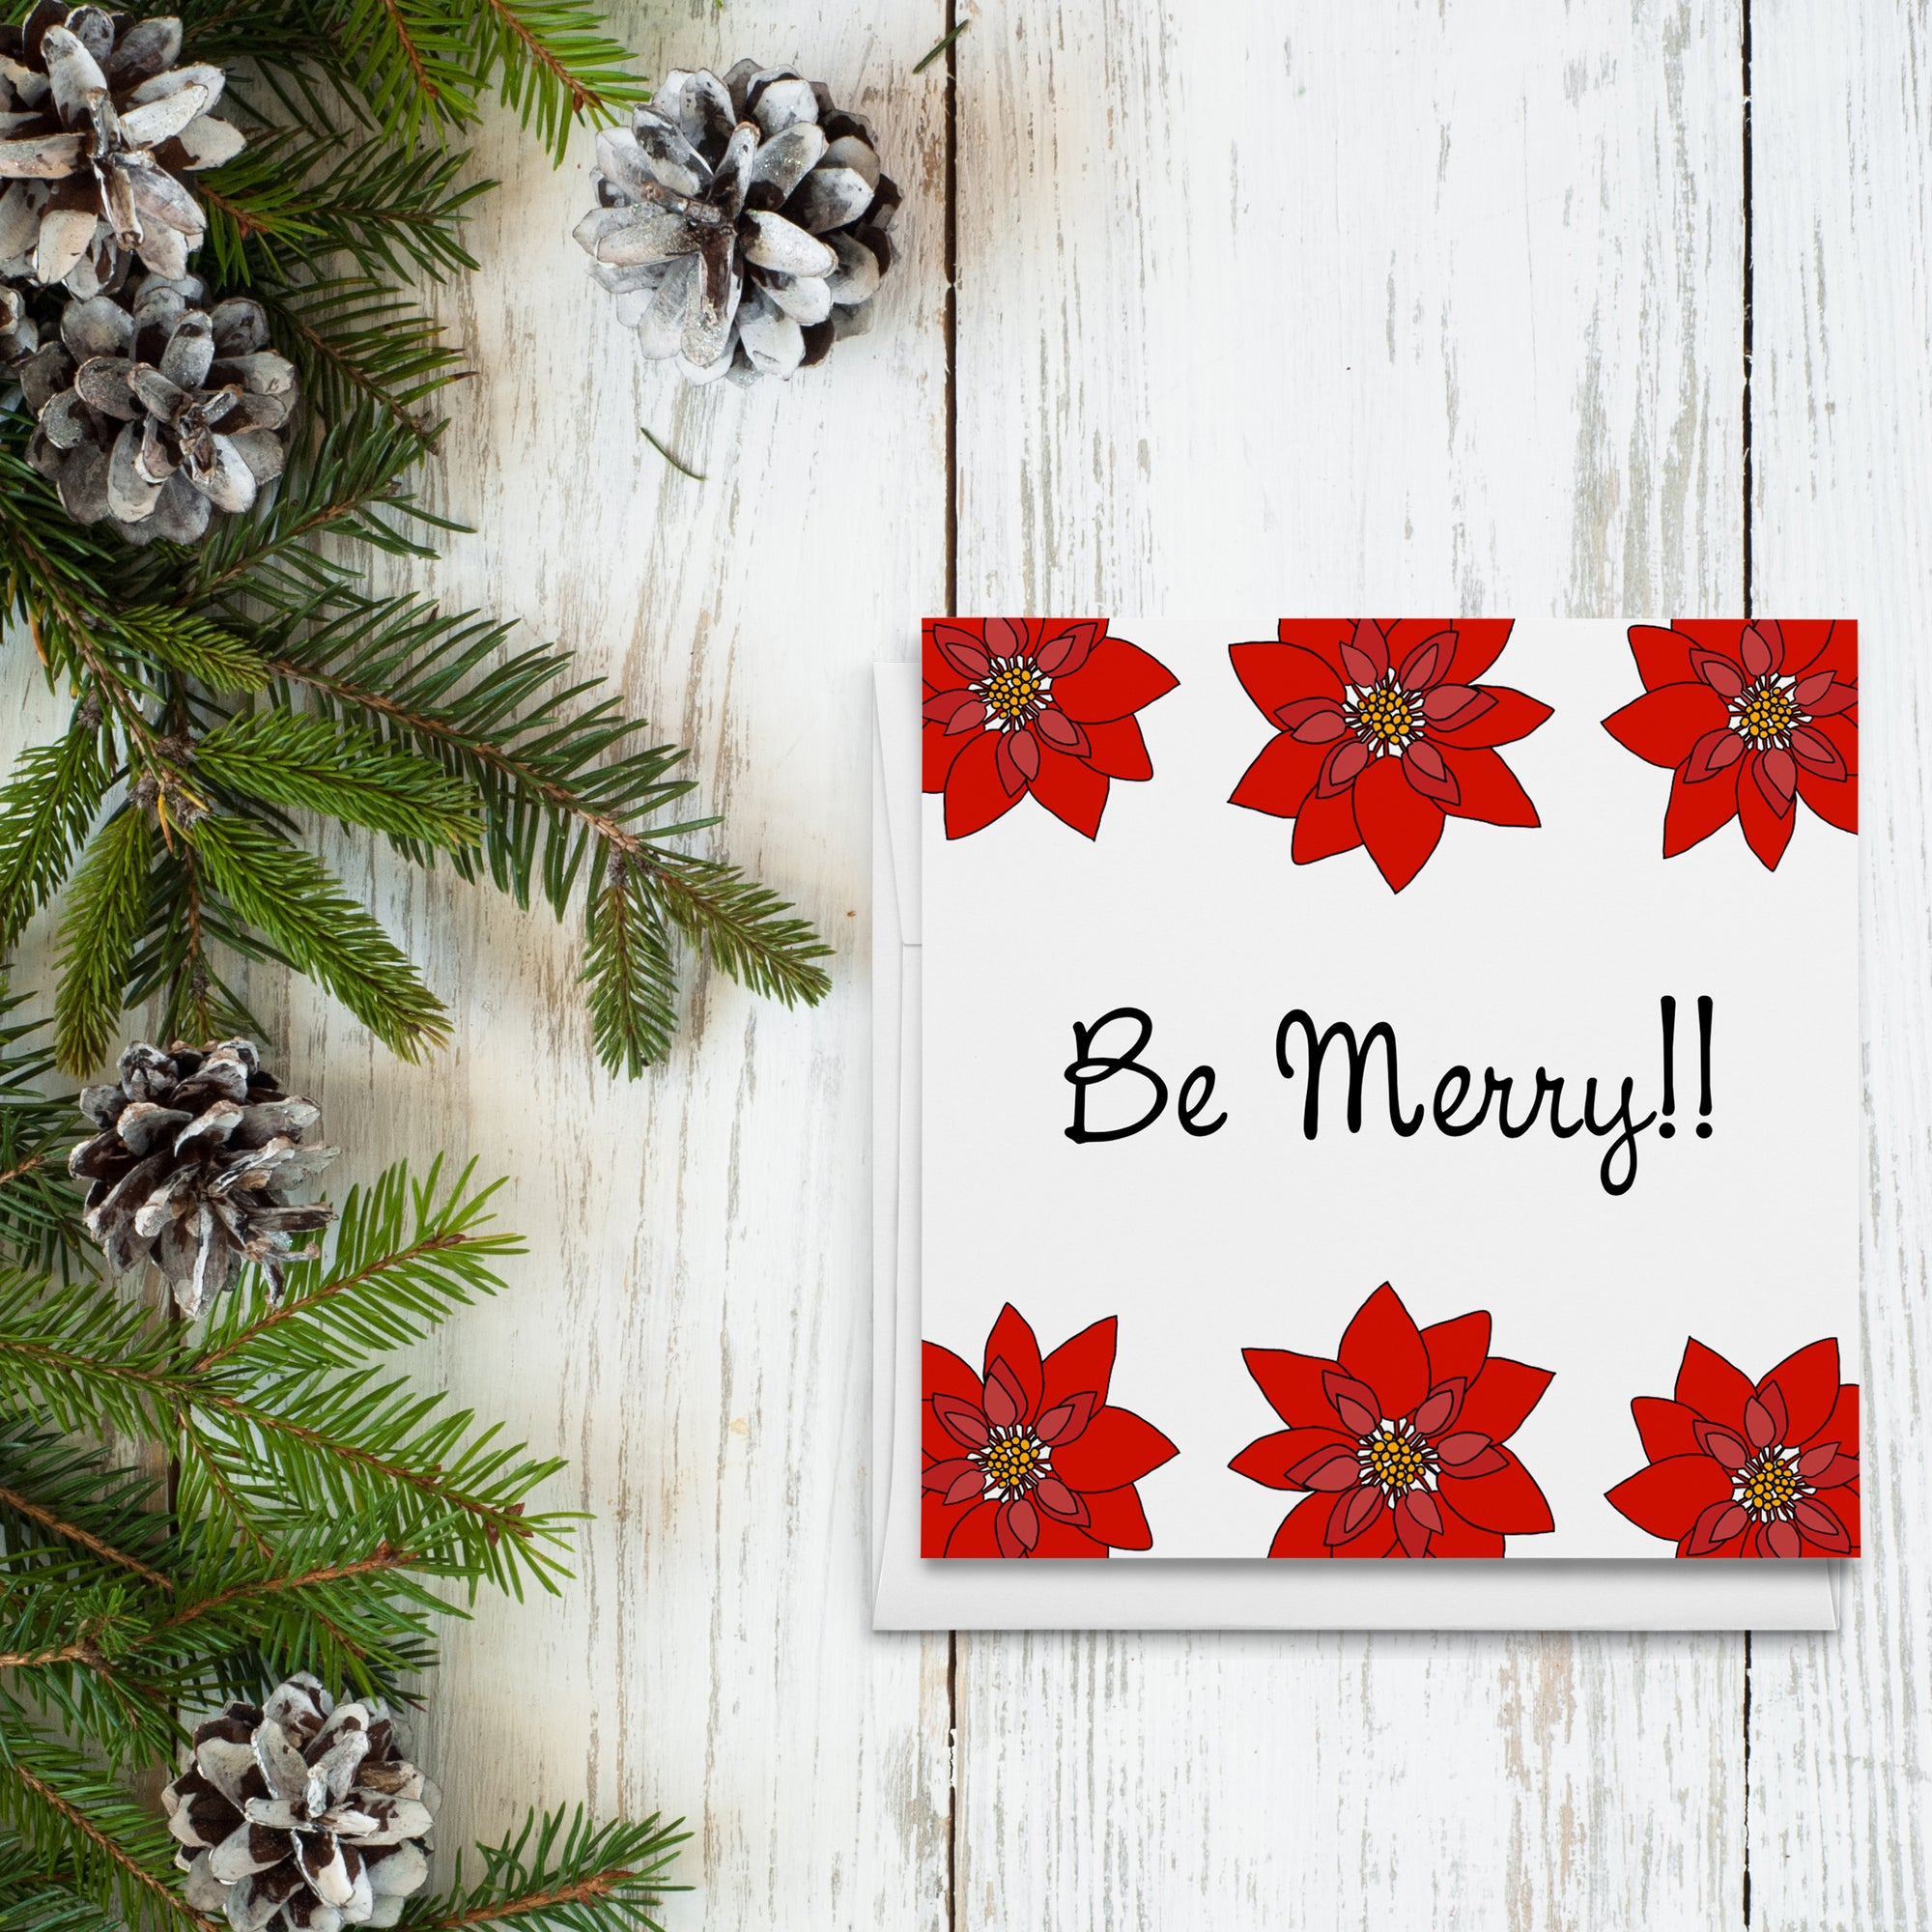 Be Merry Poinsettias Greeting Cards